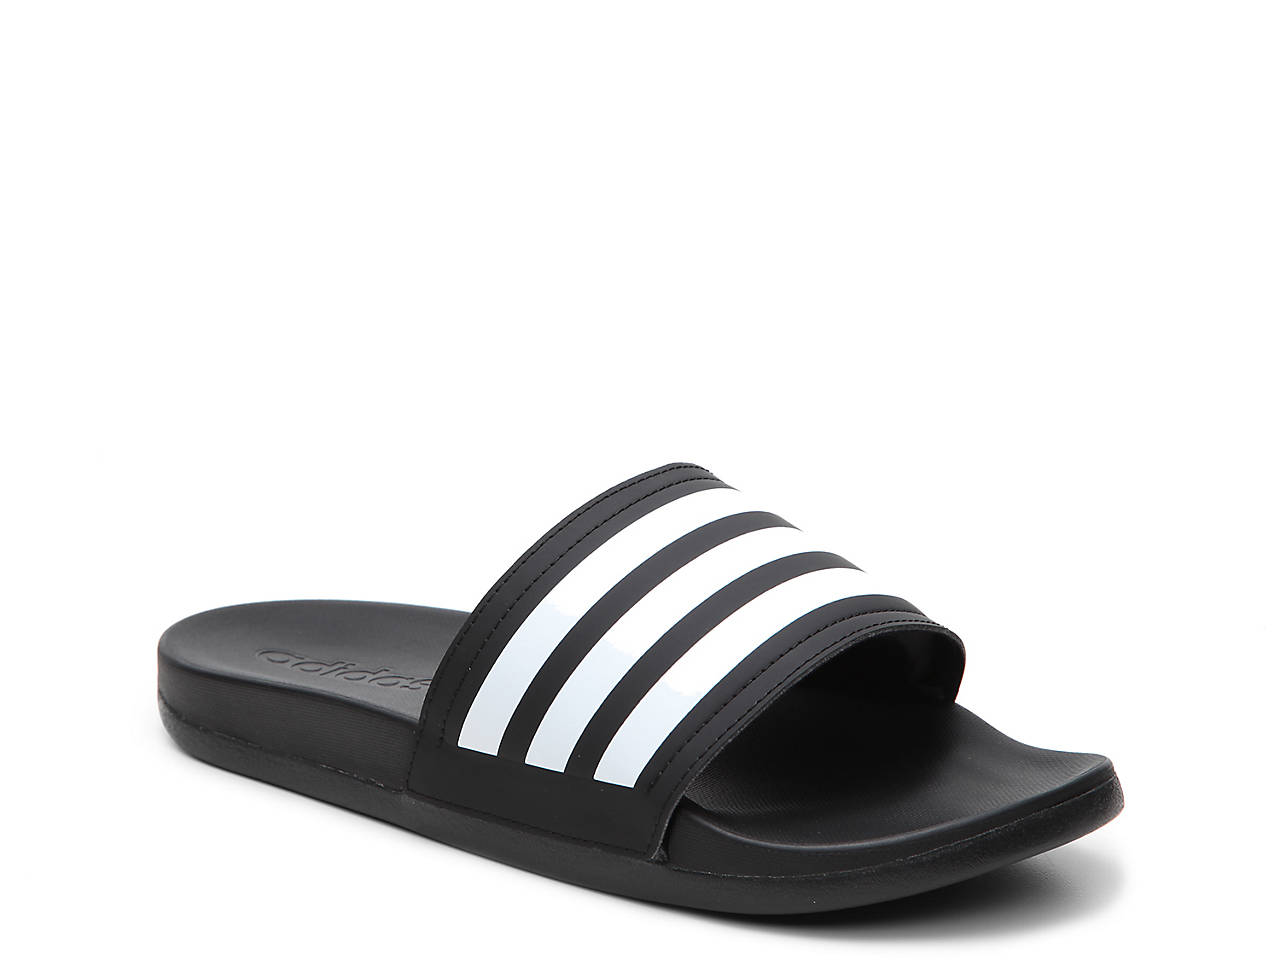 574a9aa7d90a adidas Adilette Cloudfoam Ultra Stripes Slide Sandal - Women s ...